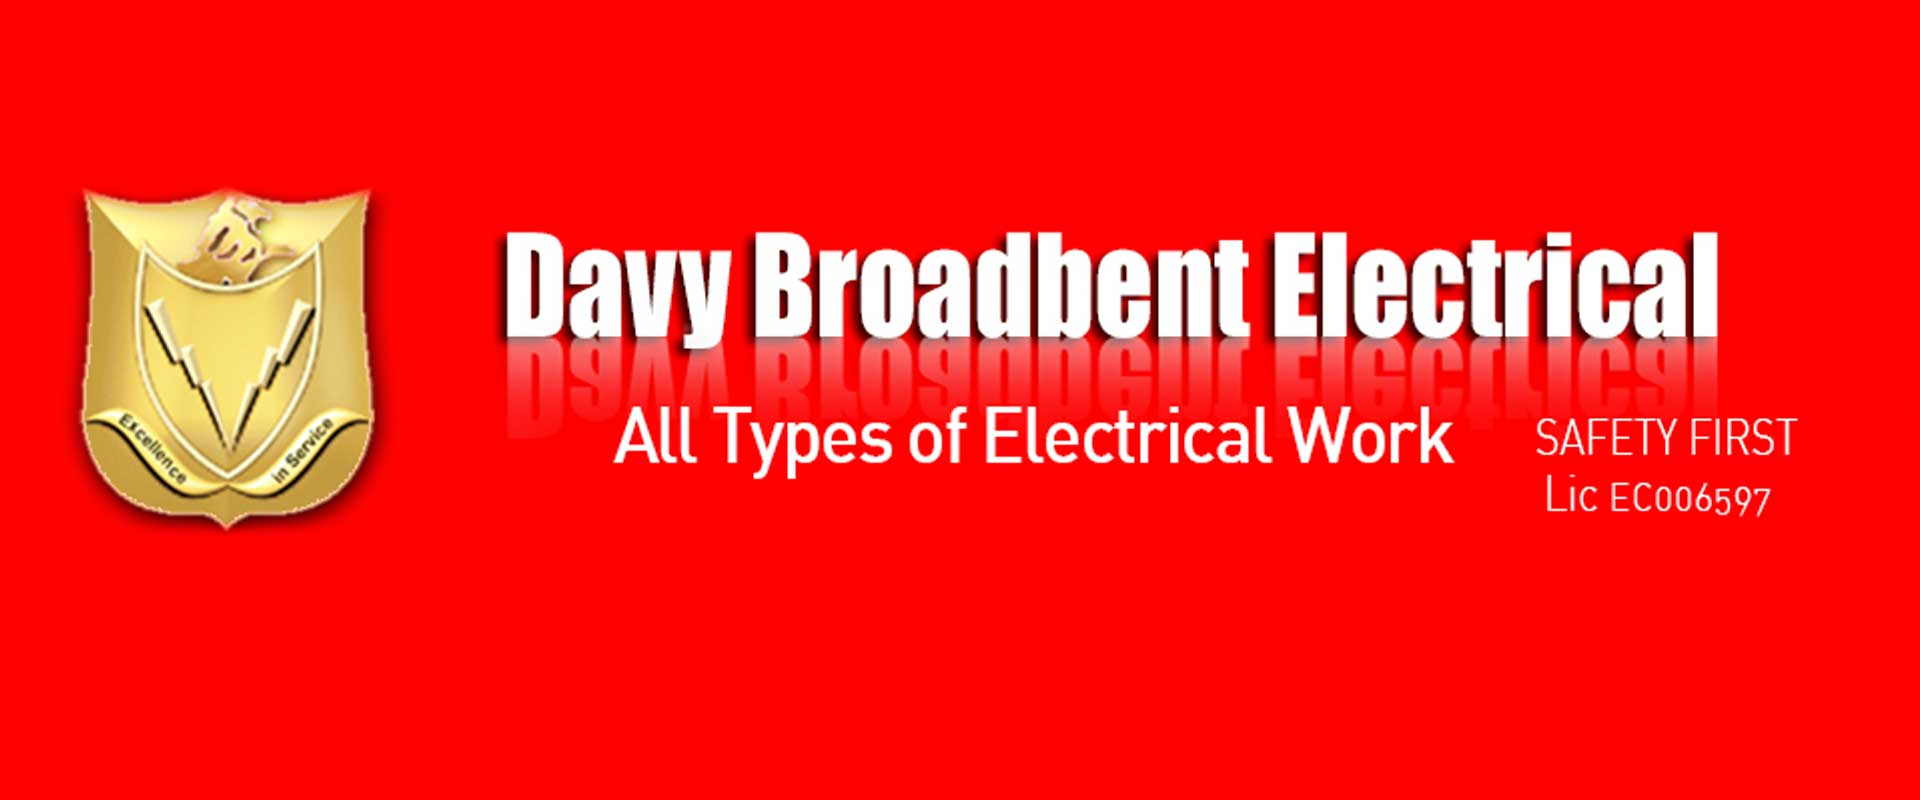 Davy Broadbent Electrical Contractor